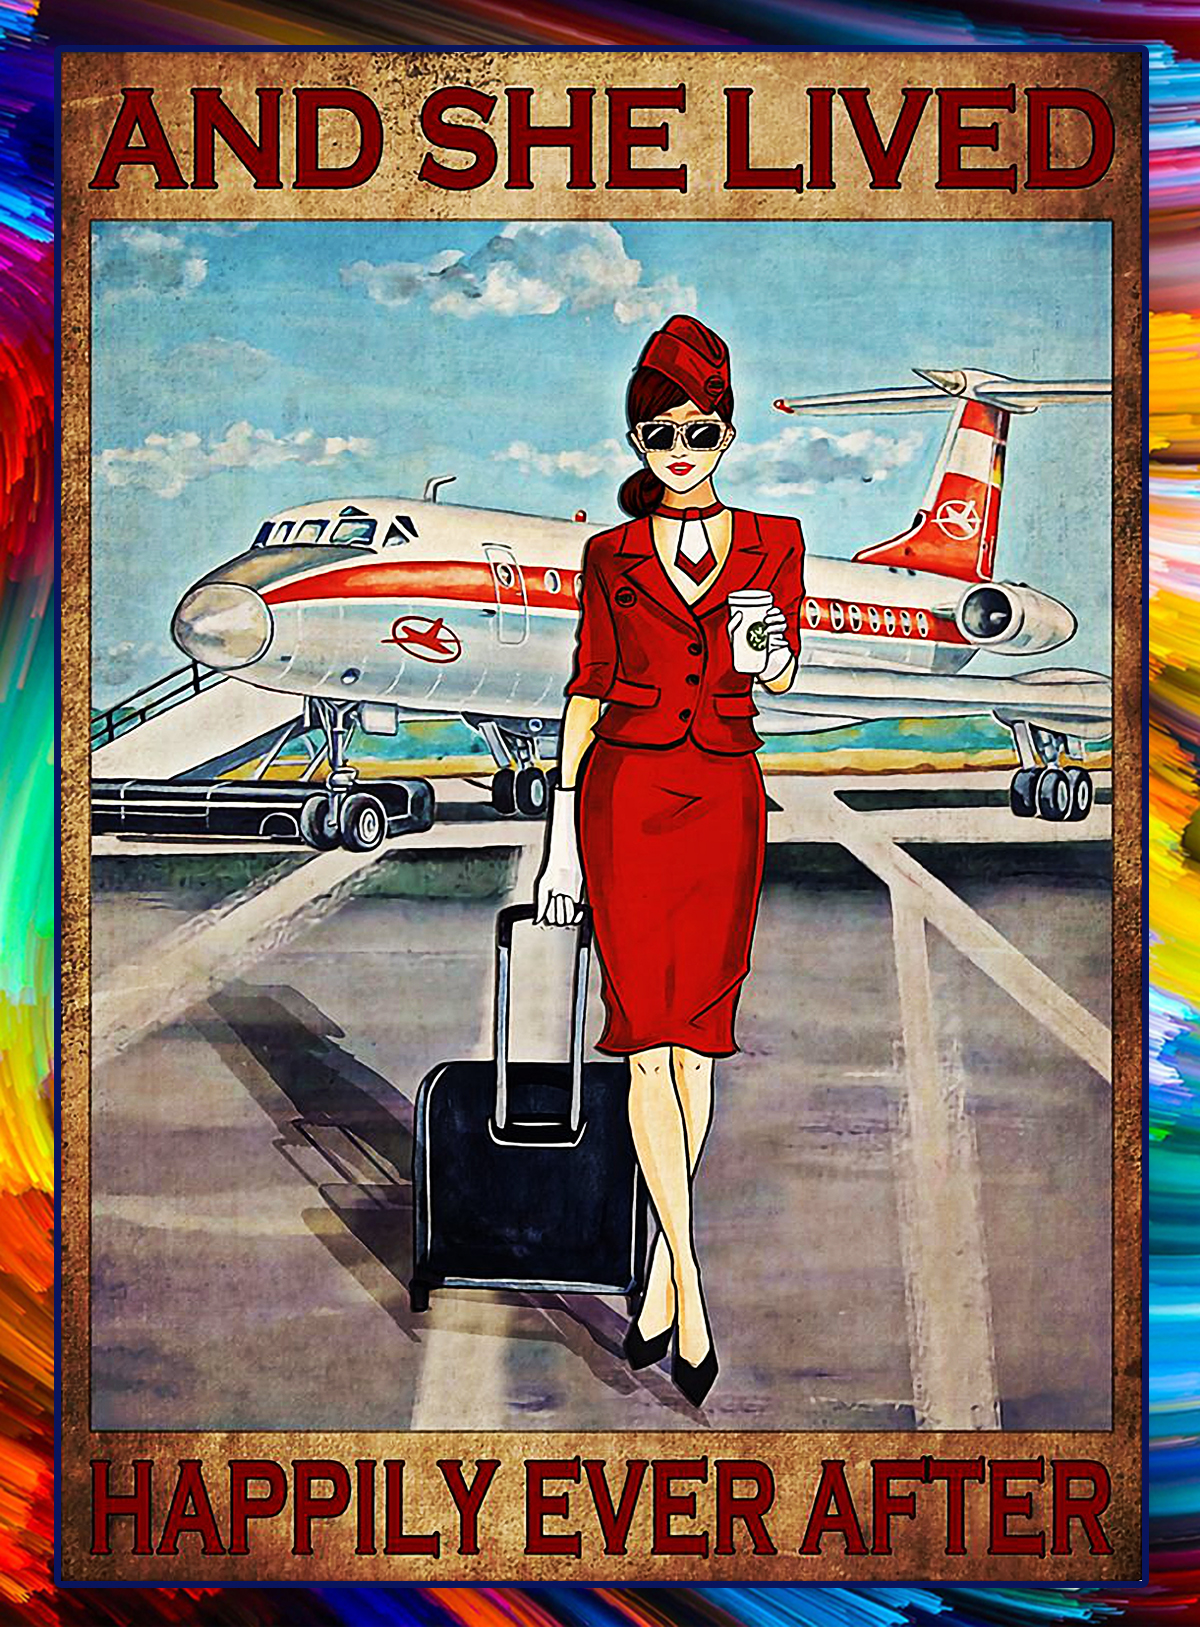 And She Lived Happily Ever After Flight Attendant poster - Style 4